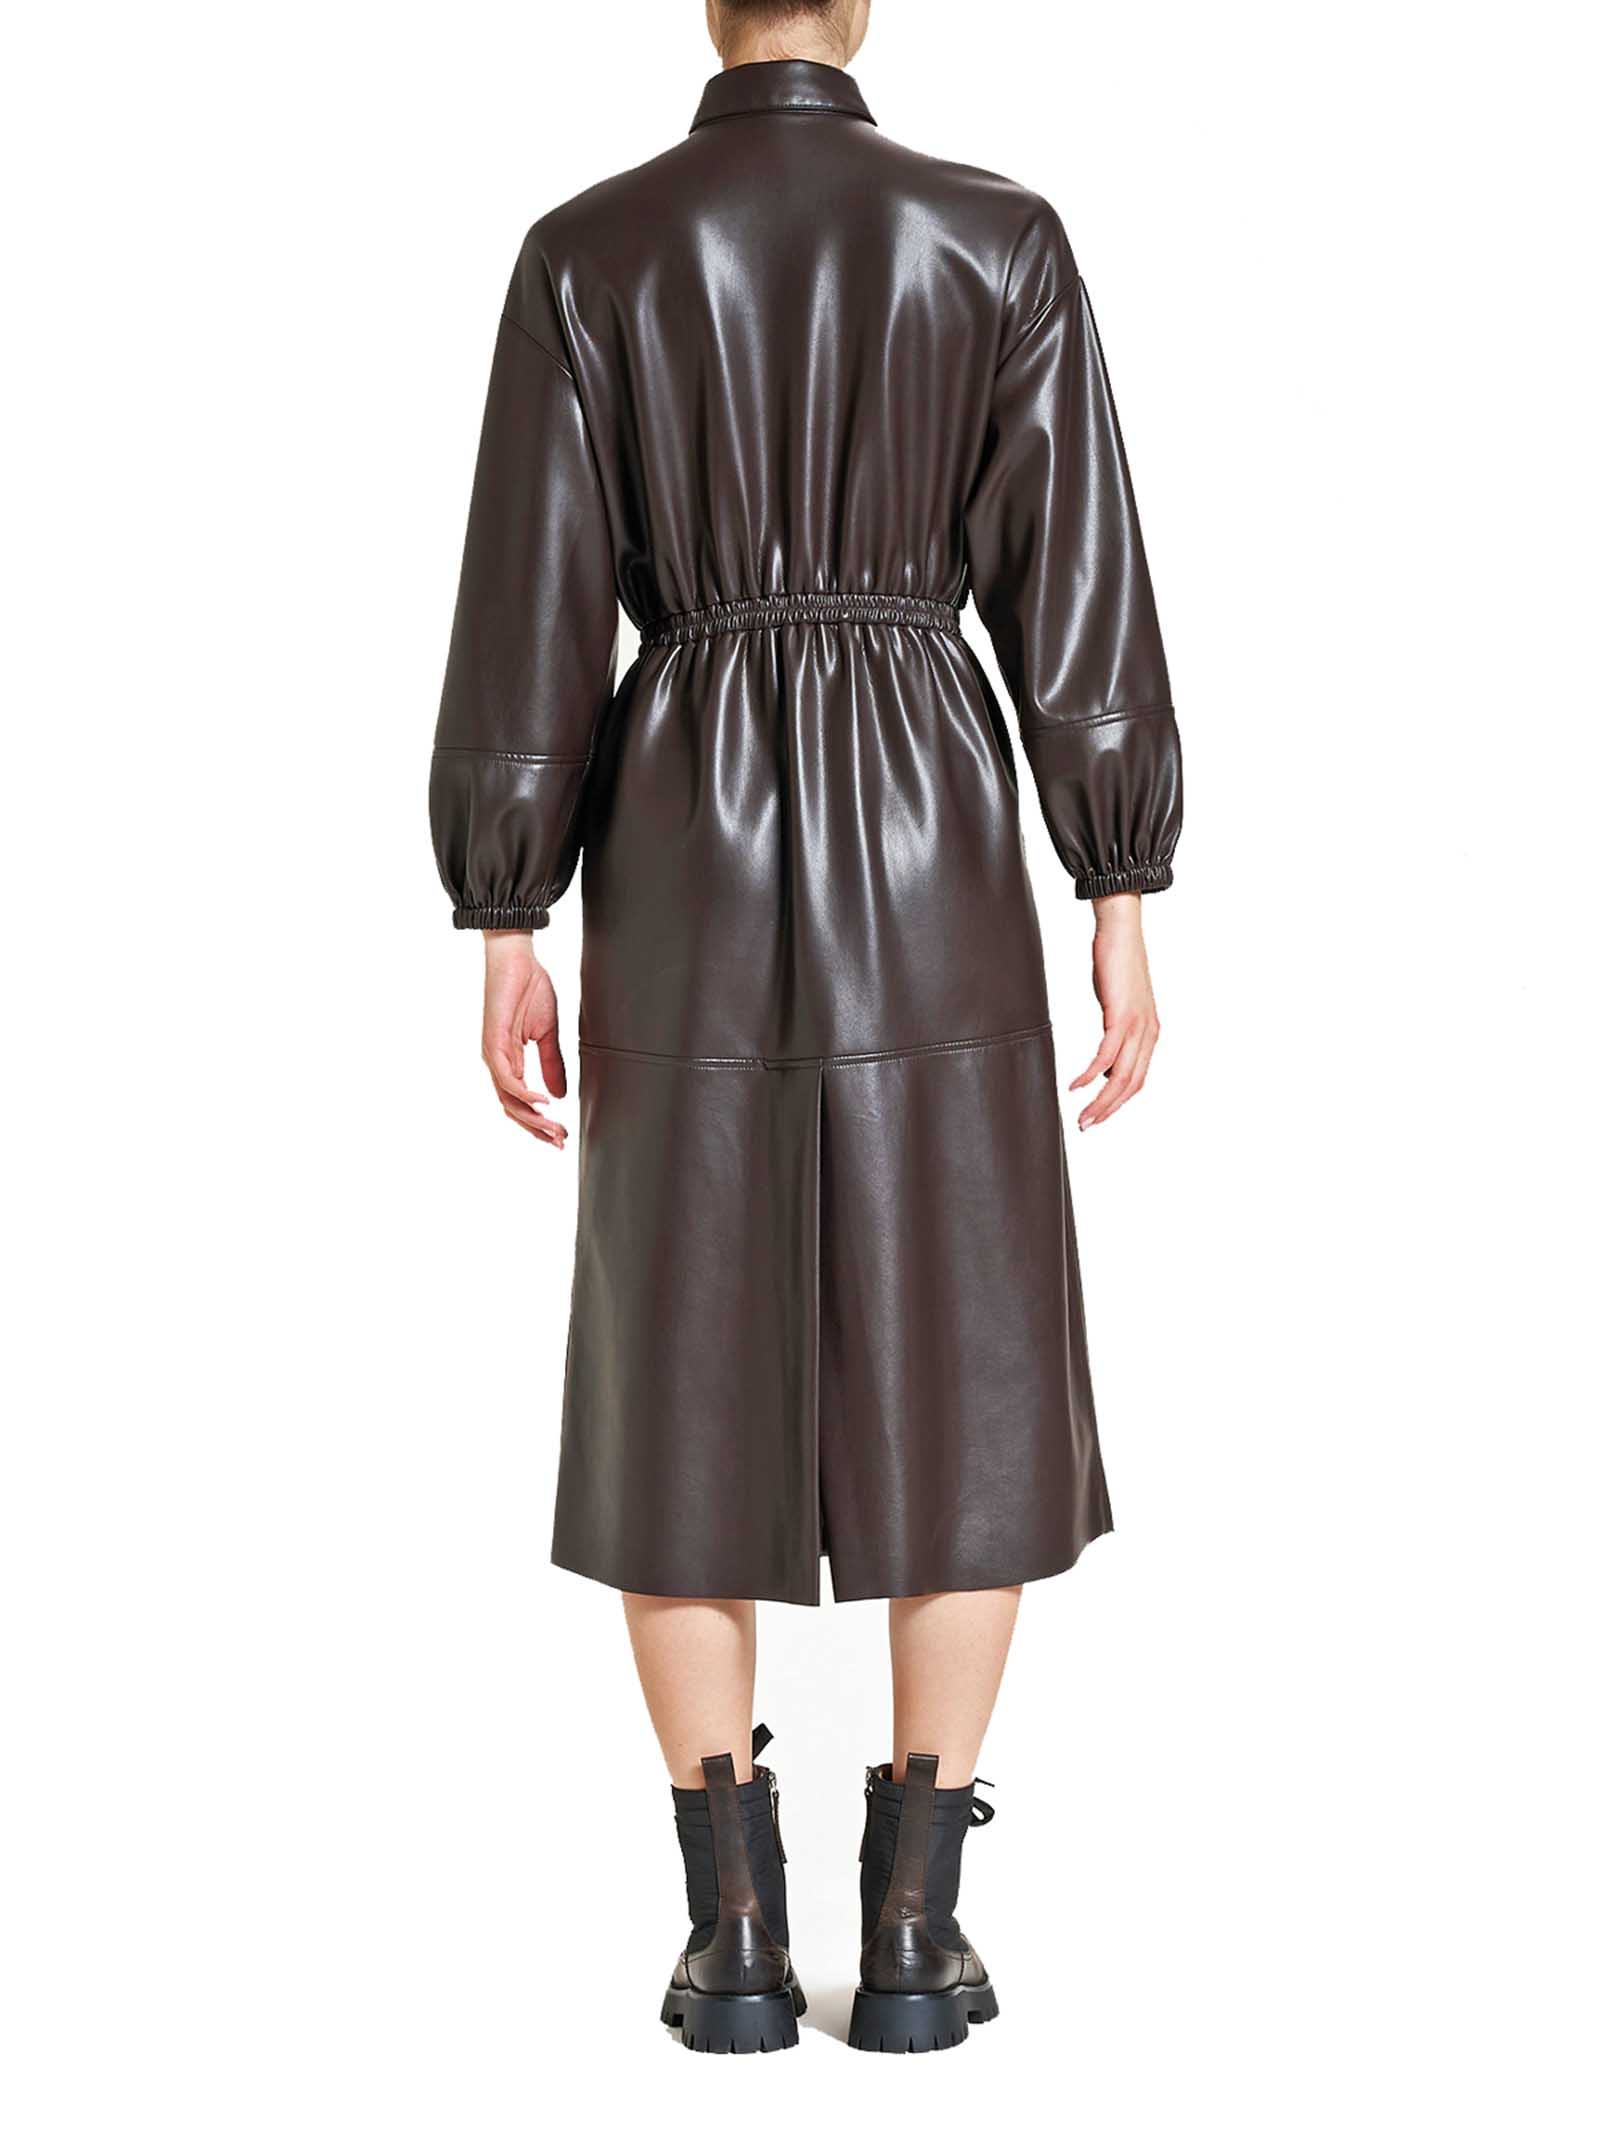 Women's Clothing Long Leather Dress in Brown Eco-Leather with Puffed Sleeves Maliparmi   Dresses   JF64625056940007